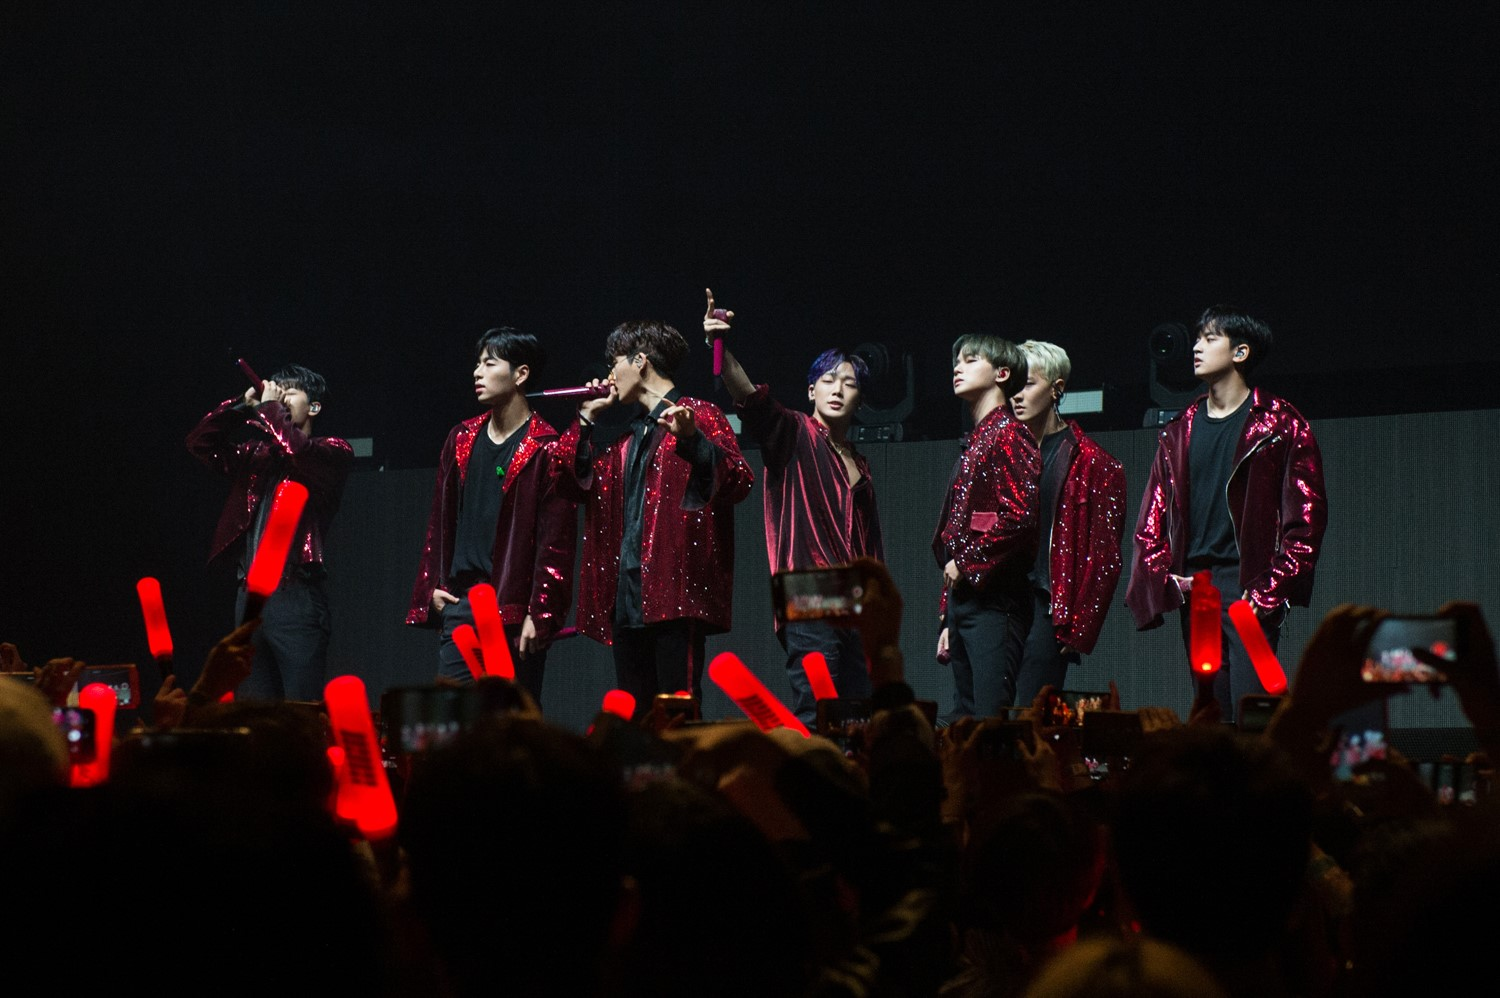 Live Review: iKON- Big Top Luna Park, Sydney (25.10.18)